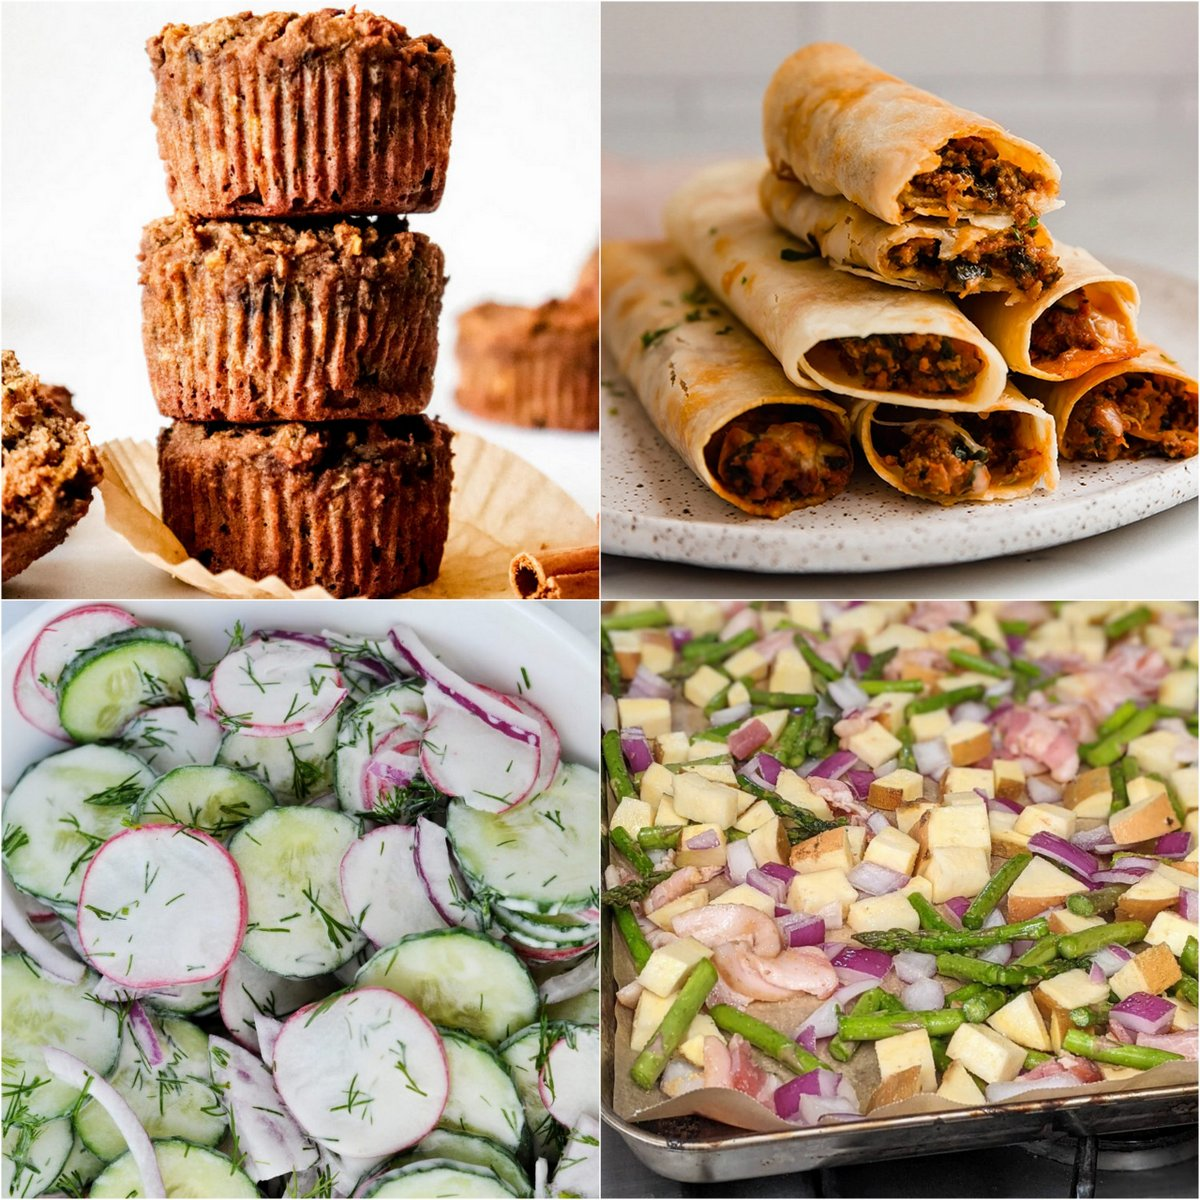 Paleo AIP Recipe Roundtable #380 | Phoenix Helix - *Featured Recipes: Zucchini Carrot Muffins, Pizza Taquitos, Cucumber Radish Dill Salad, and Lemon Bacon Asparagus Sheet Pan Dinner.